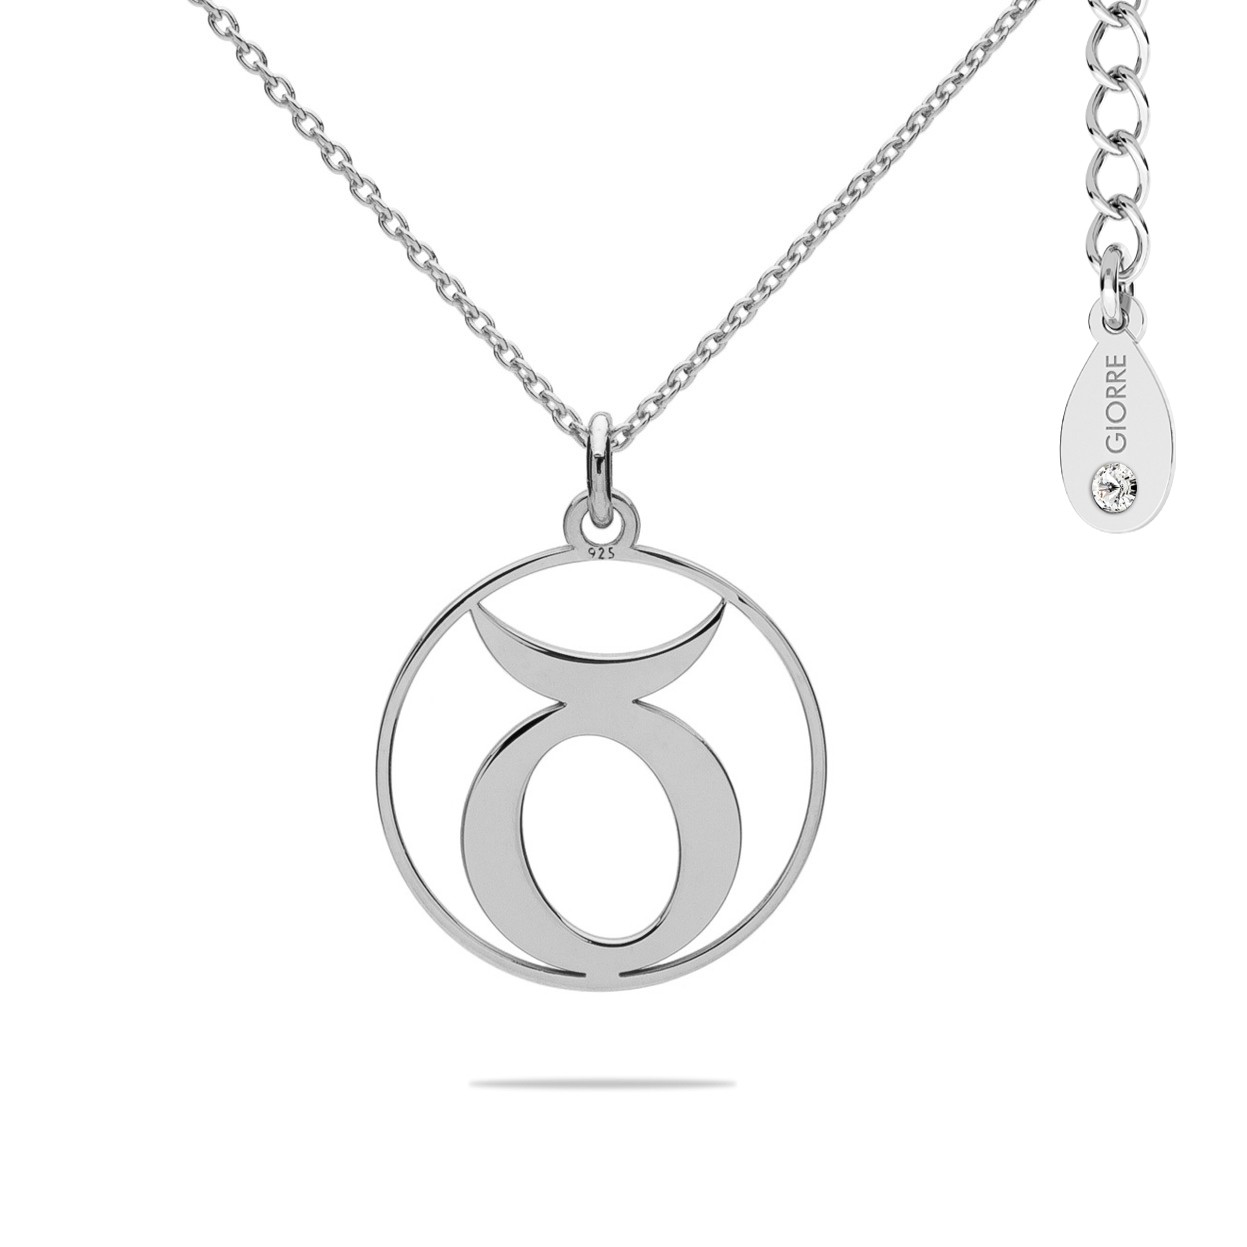 TAURUS zodiac sign necklace with Swarovski Crystals sterling silver 925